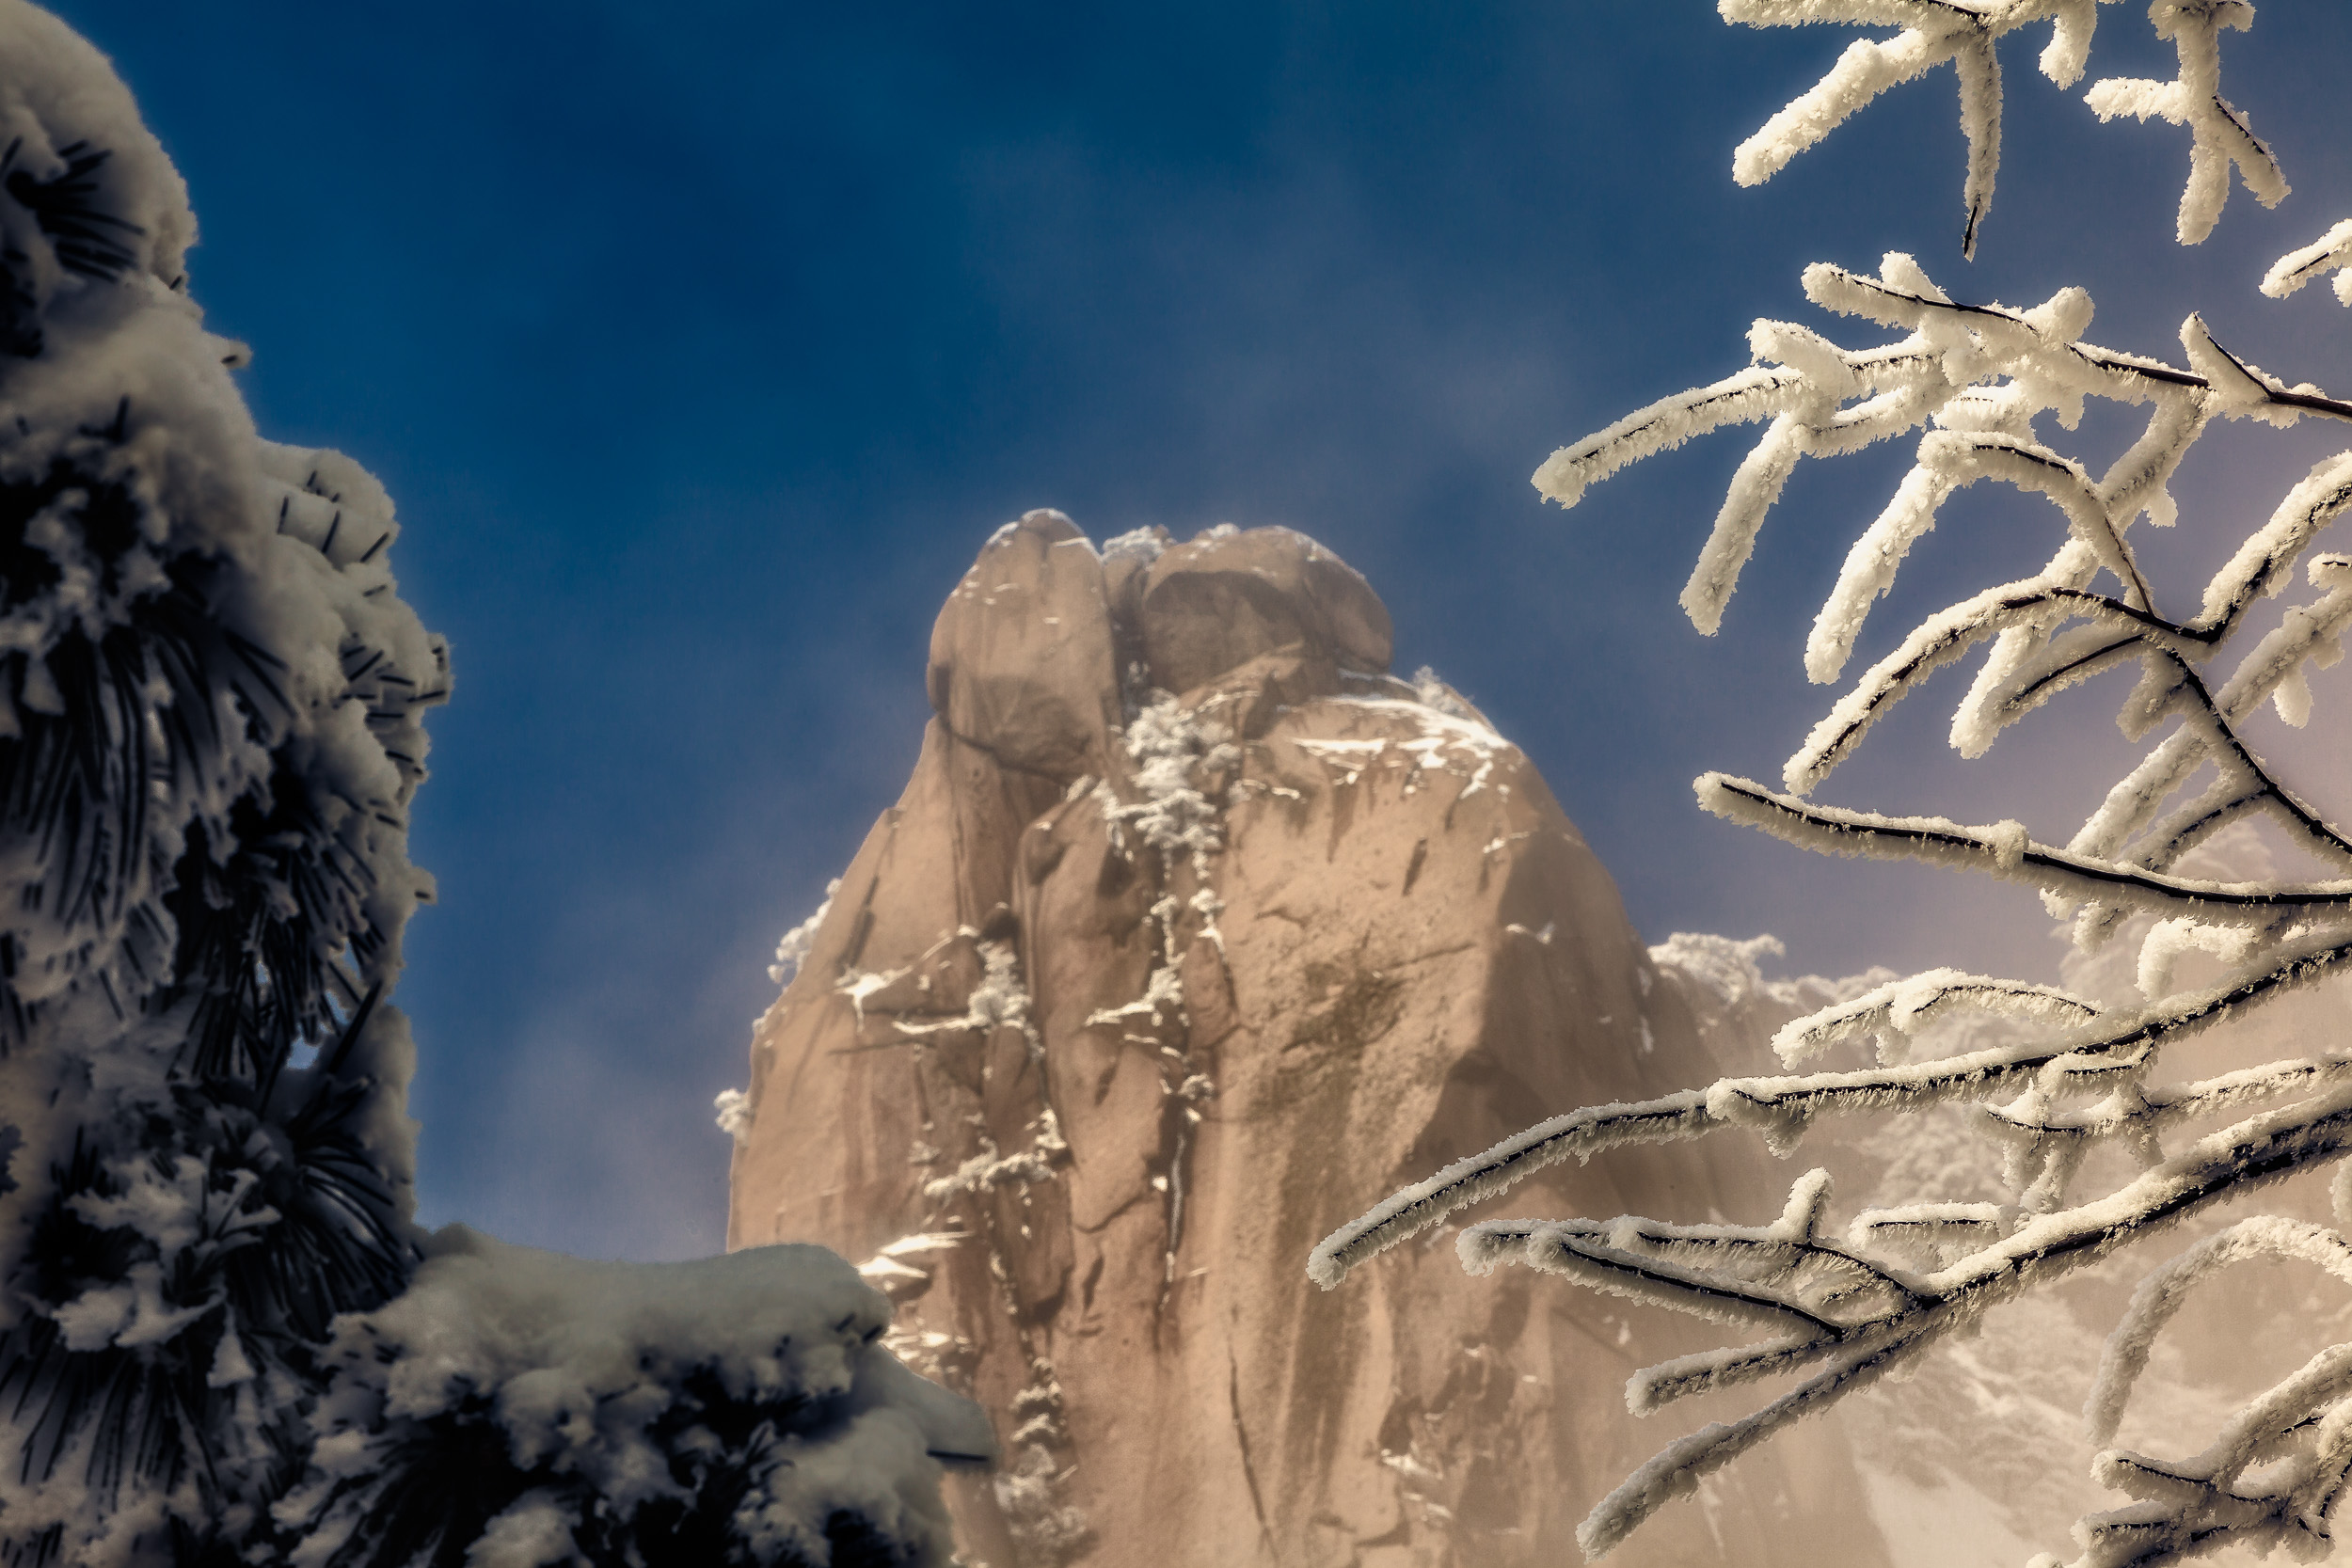 A  mountain peak , bathed in warm light, is  framed by ice encrusted treees  on the spectacular  Huangshan  (i.e., Yellow Mountain) in  China .